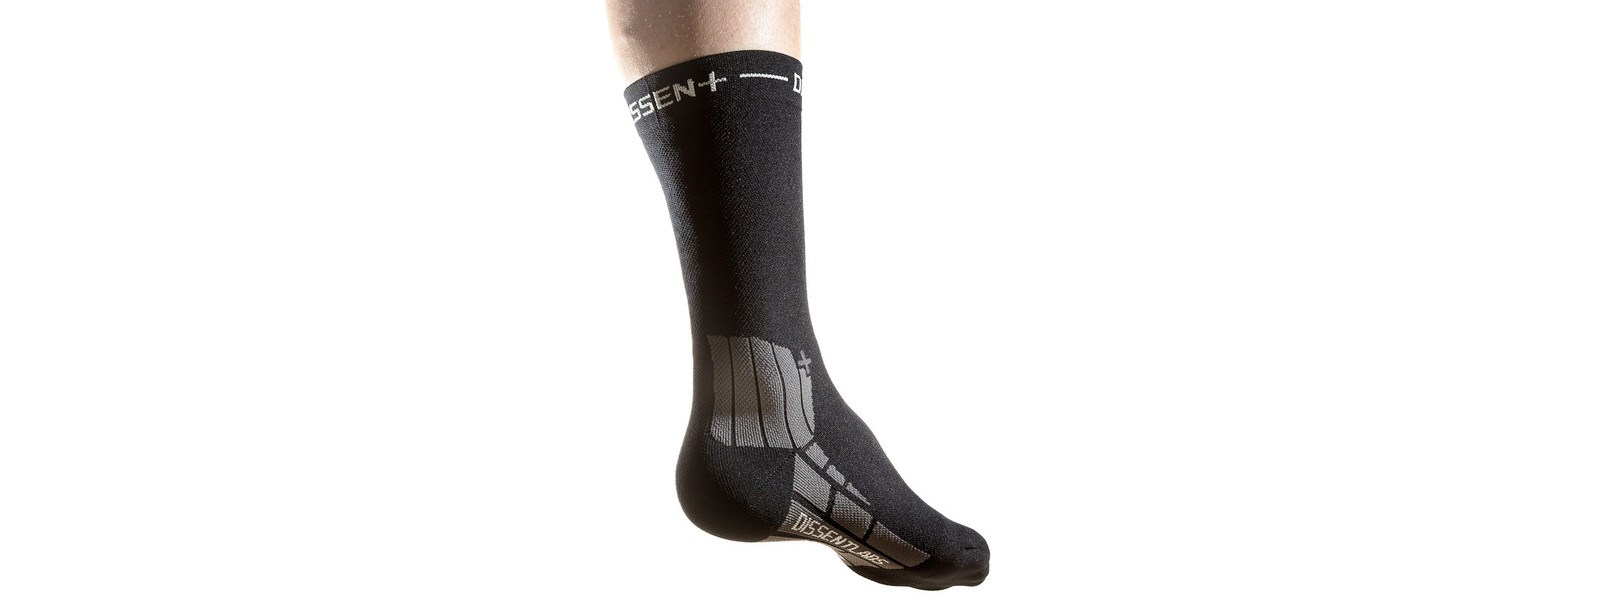 Once you've ridden in Dissent socks you may not want to wear anything else.